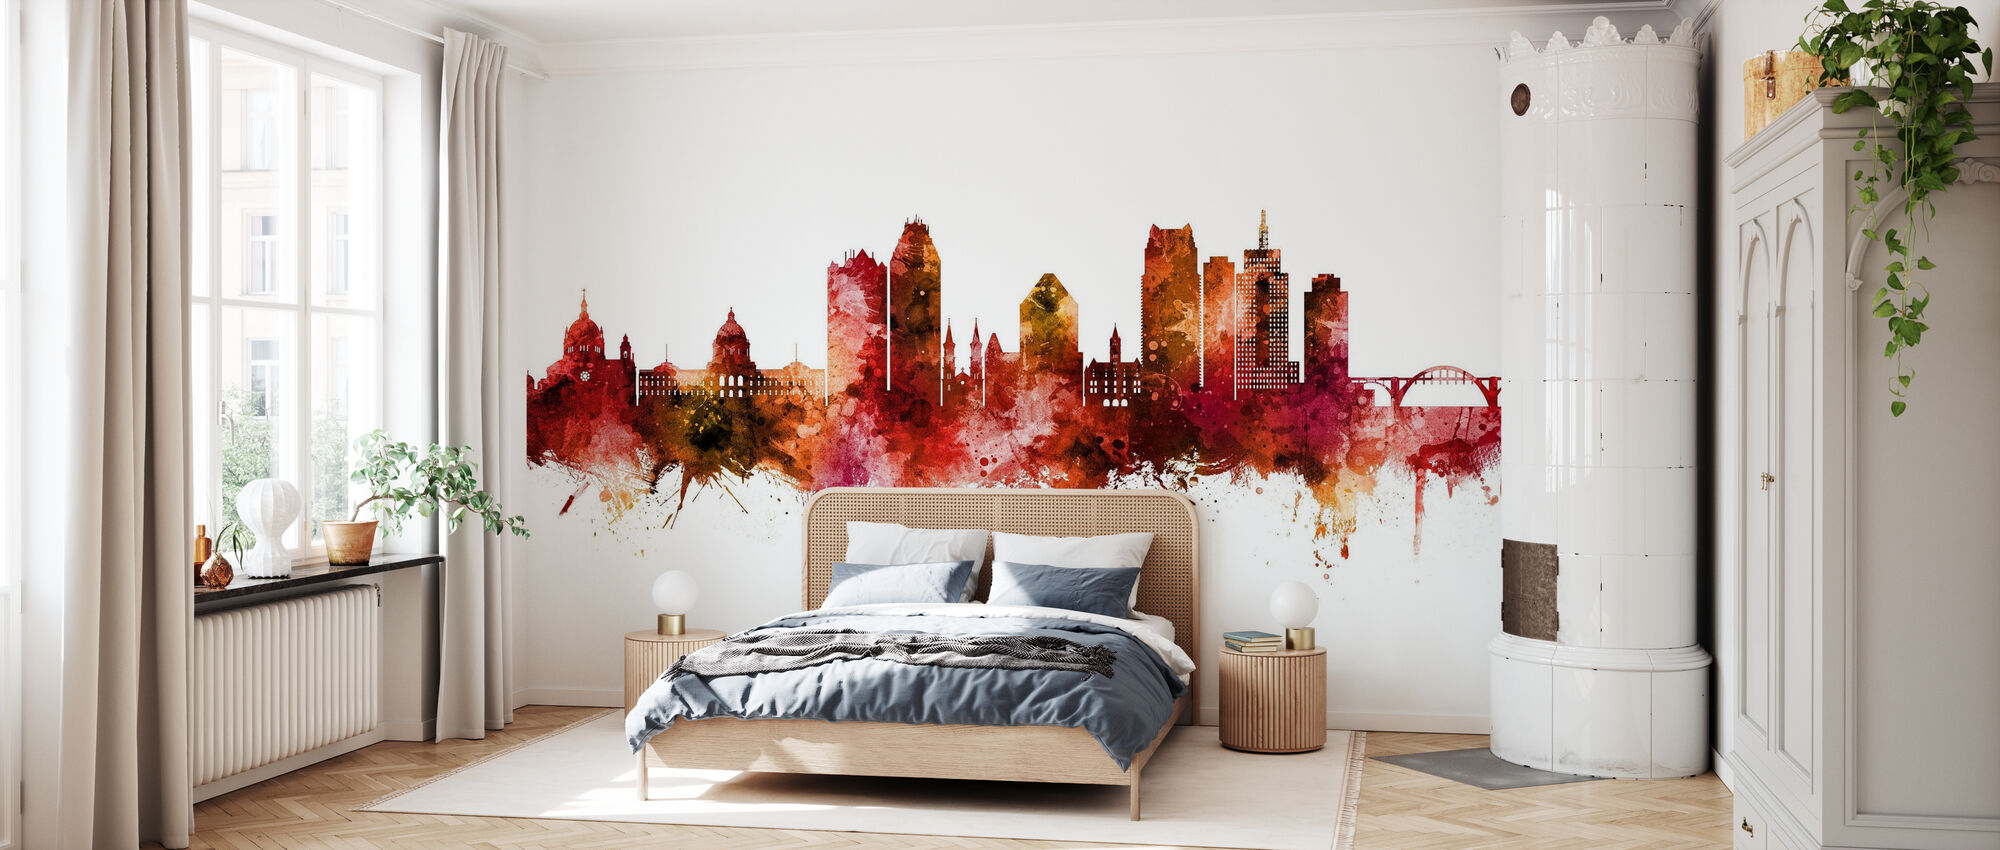 Saint Paul Minnesota Skyline - Wallpaper - Bedroom